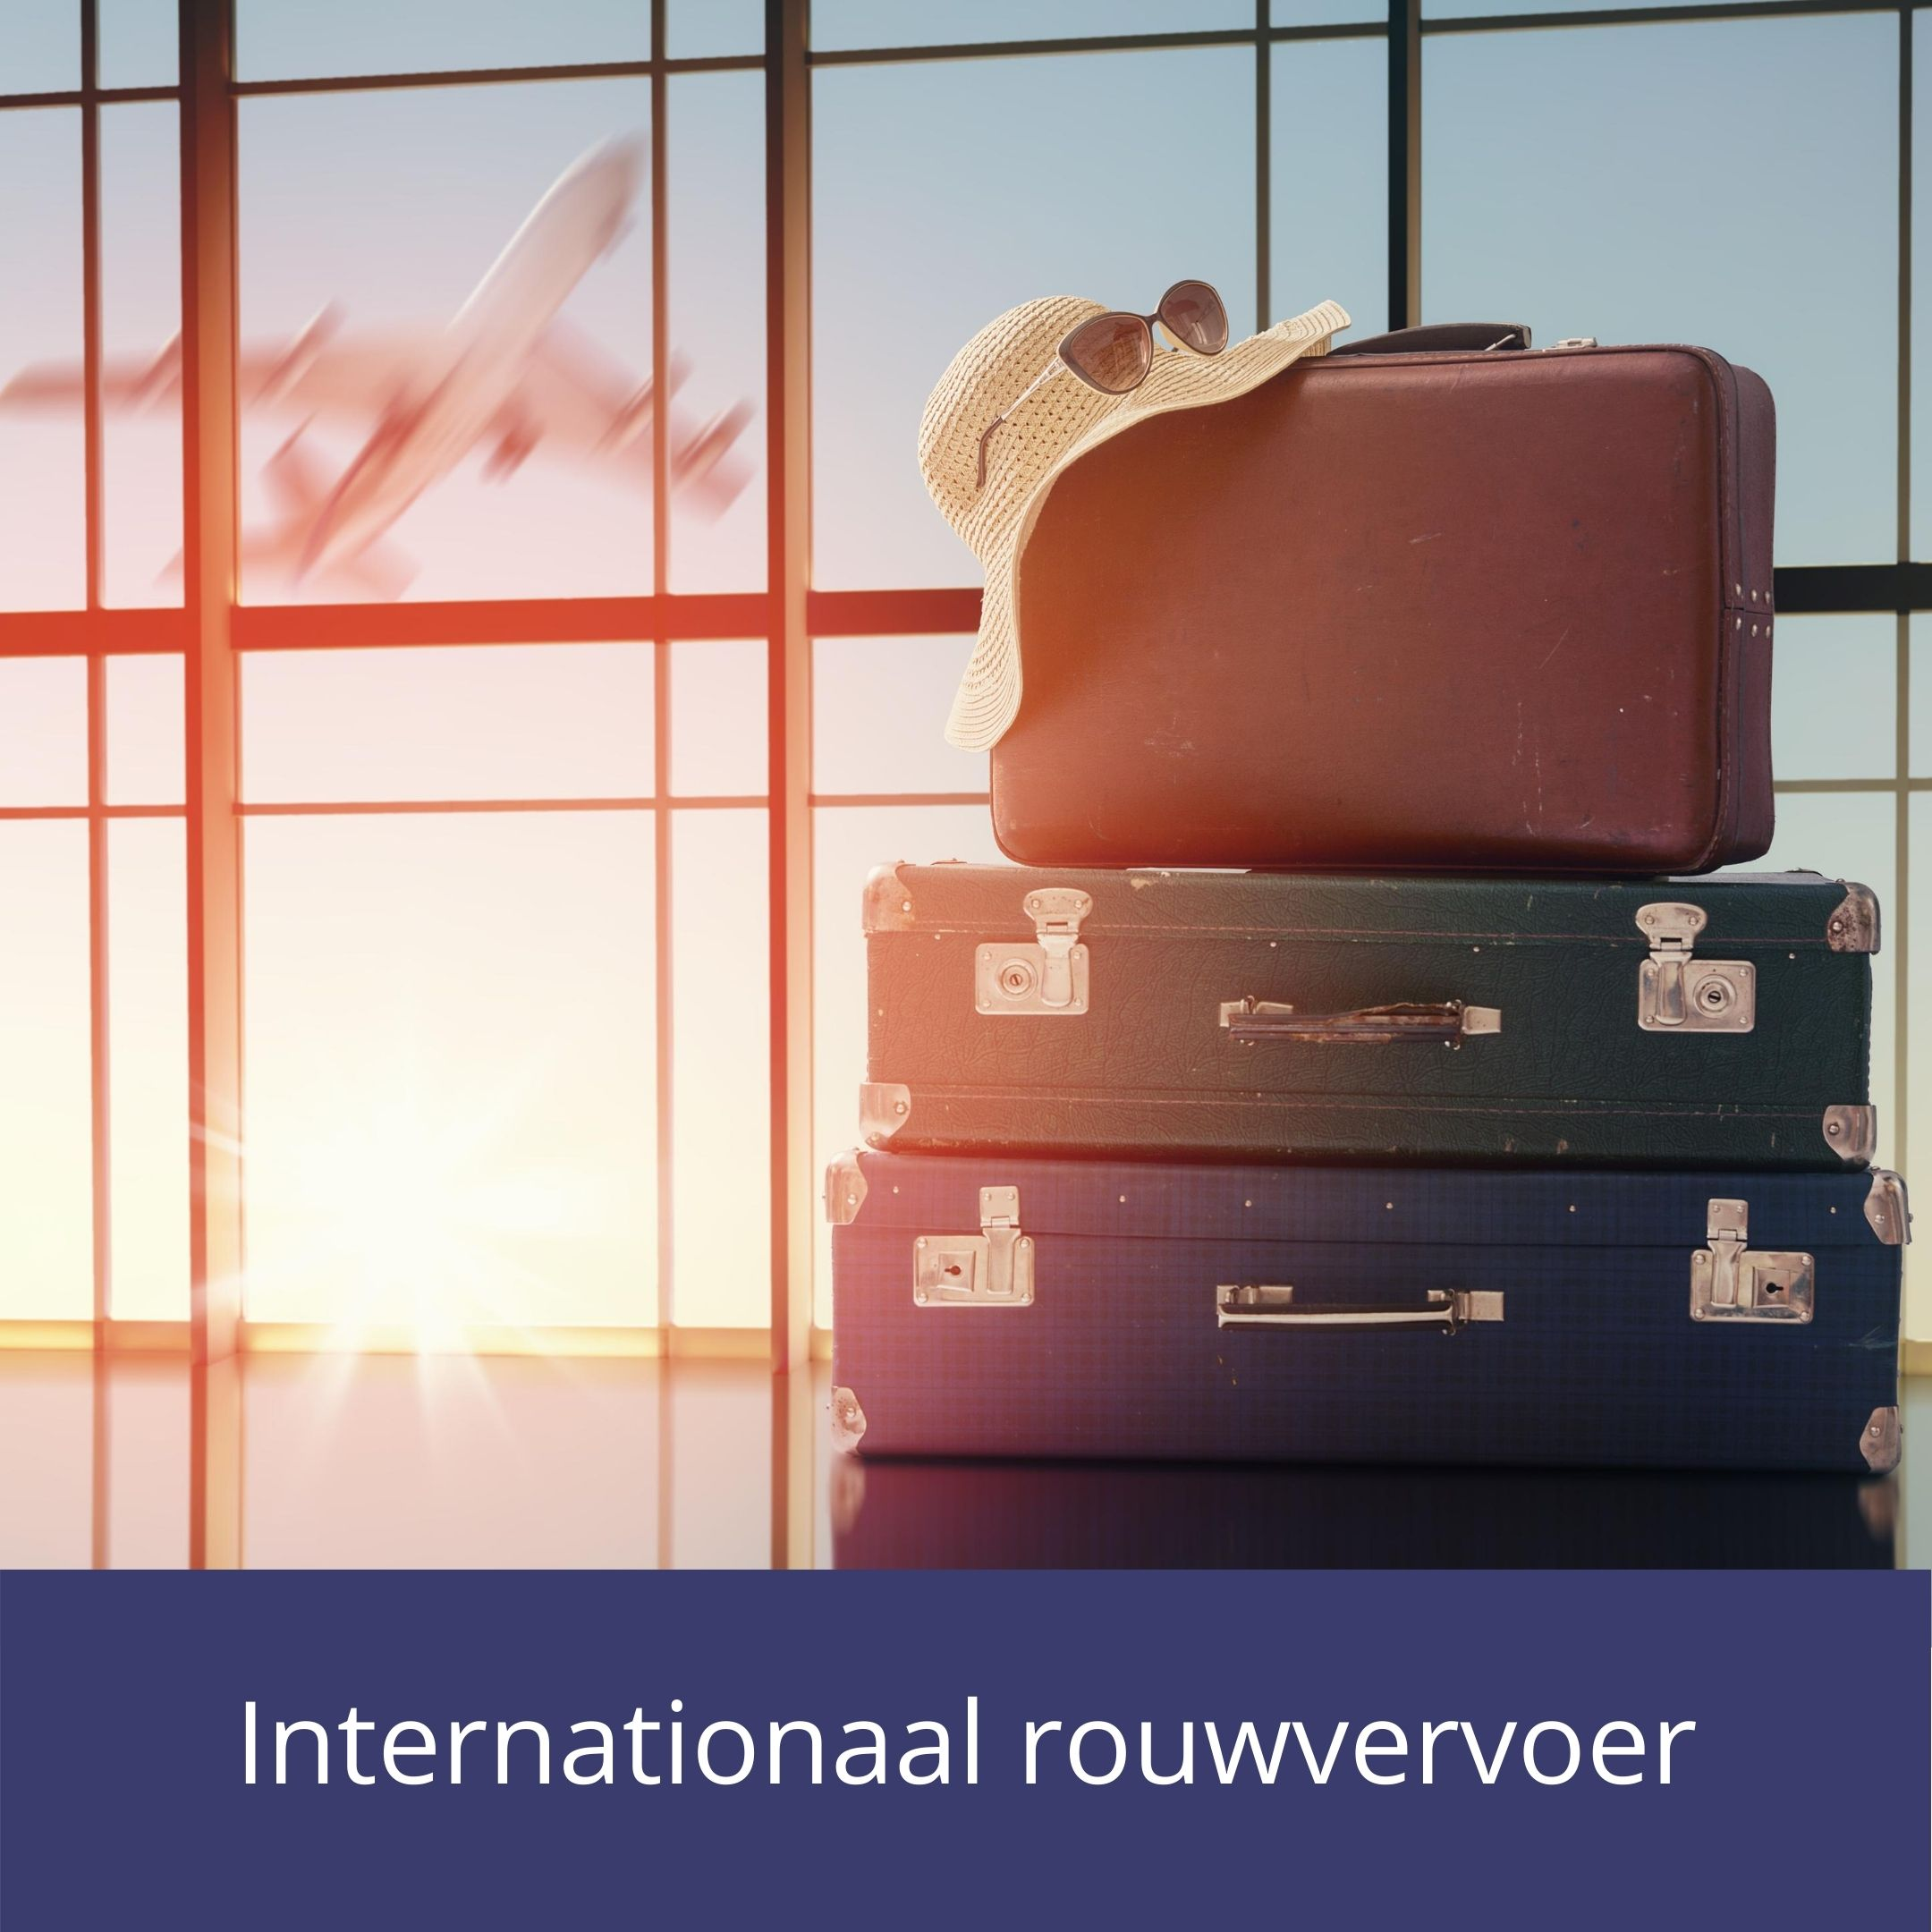 rouw-vervoer_transport_internationaal